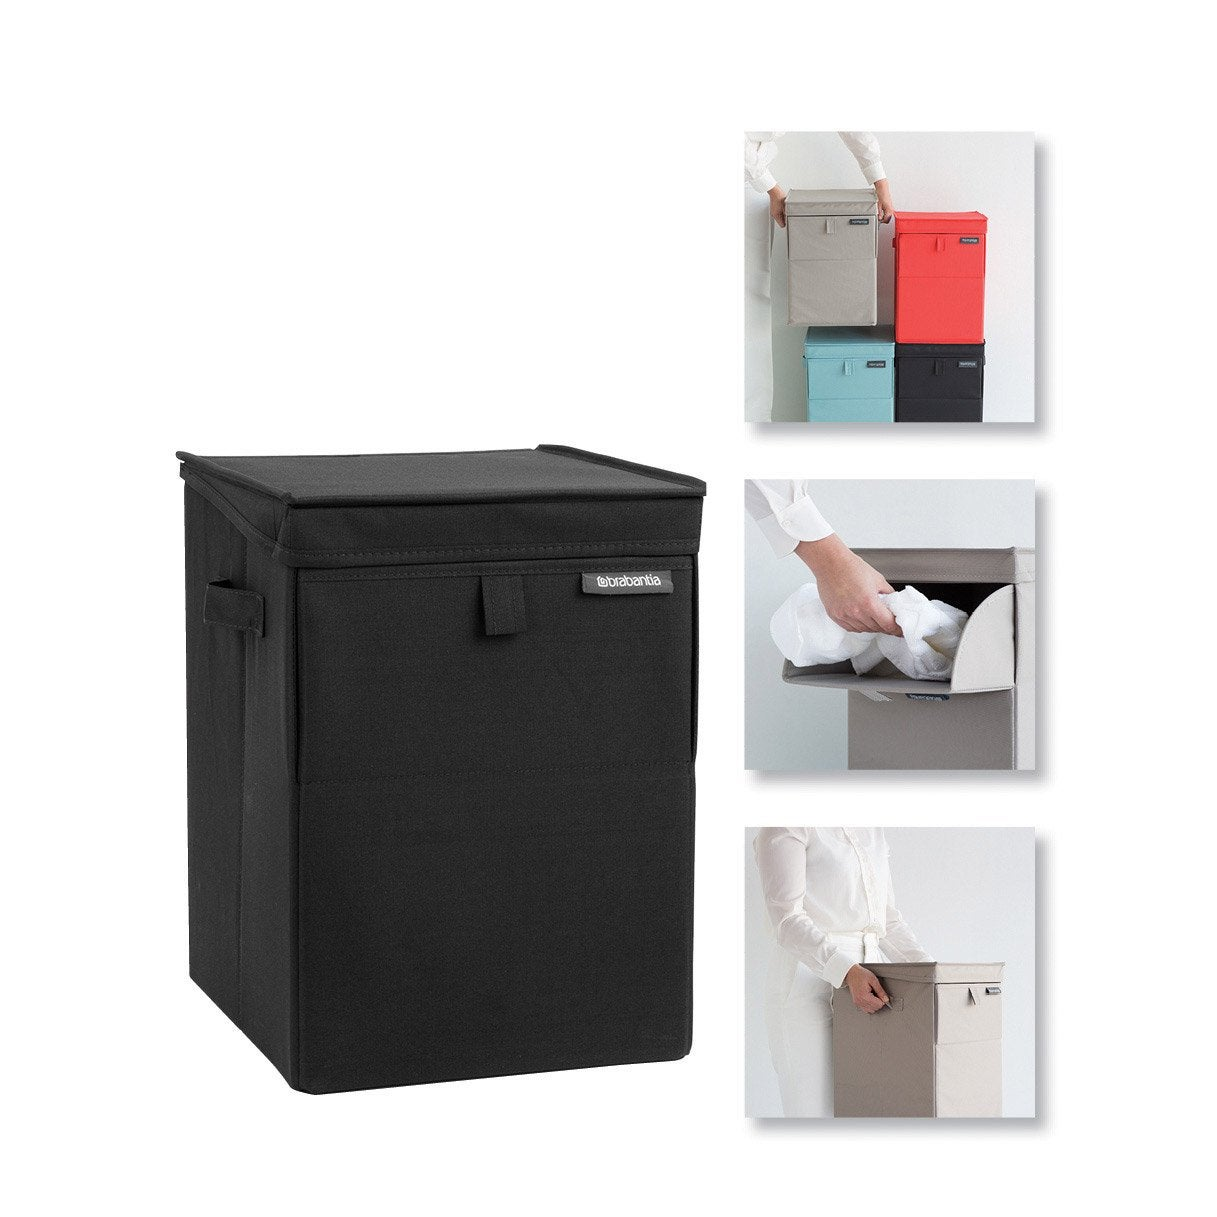 panier linge polyester coffre a linge empilable noir x x c leroy merlin. Black Bedroom Furniture Sets. Home Design Ideas